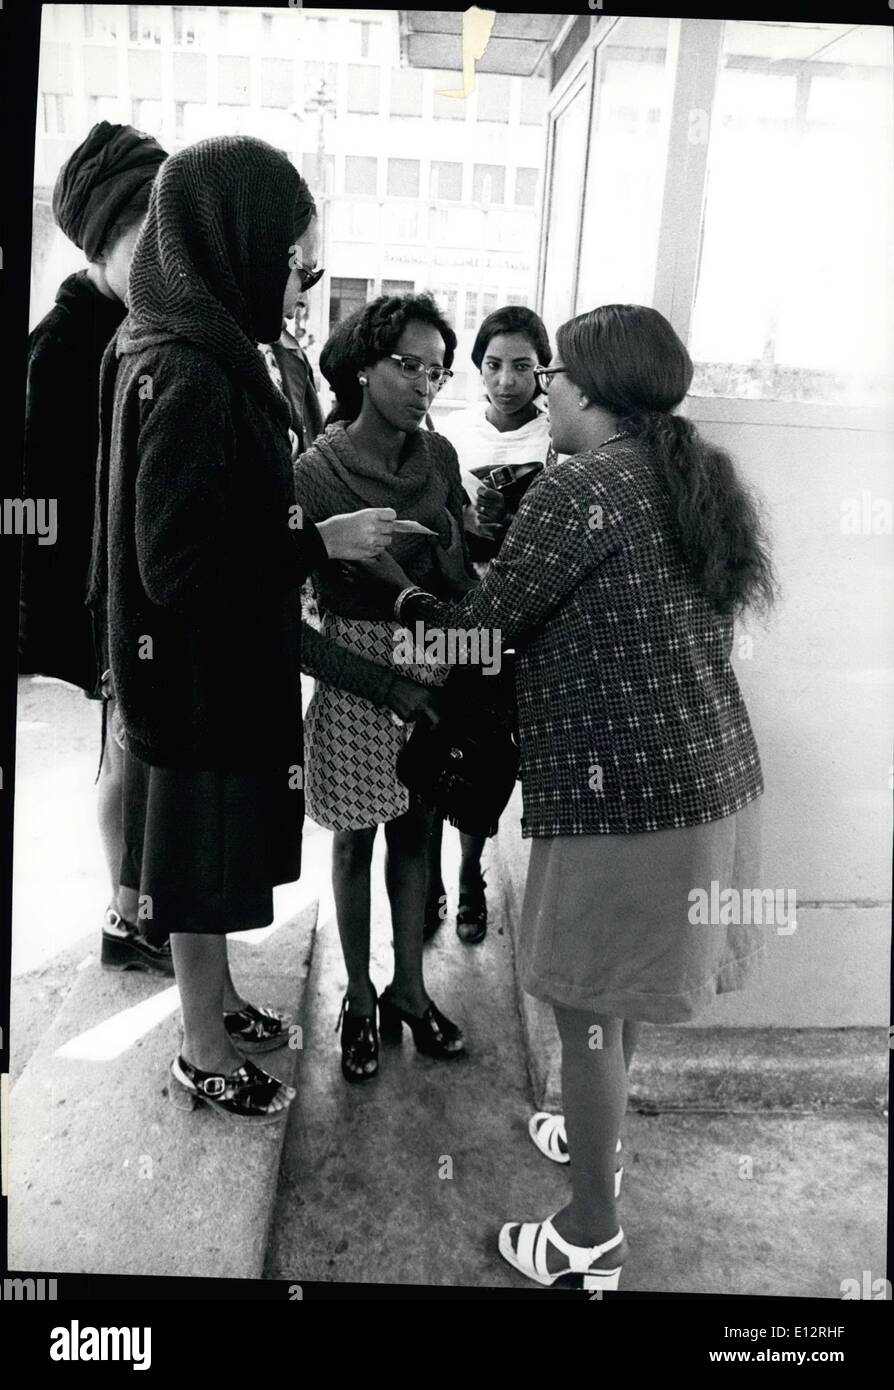 Feb. 25, 2012 - Bombs in Addis Ababa Even women were not exempt form search, and these girls are vetted by a policewoman in plain clothes before being allowed to go to their offices. - Stock Image